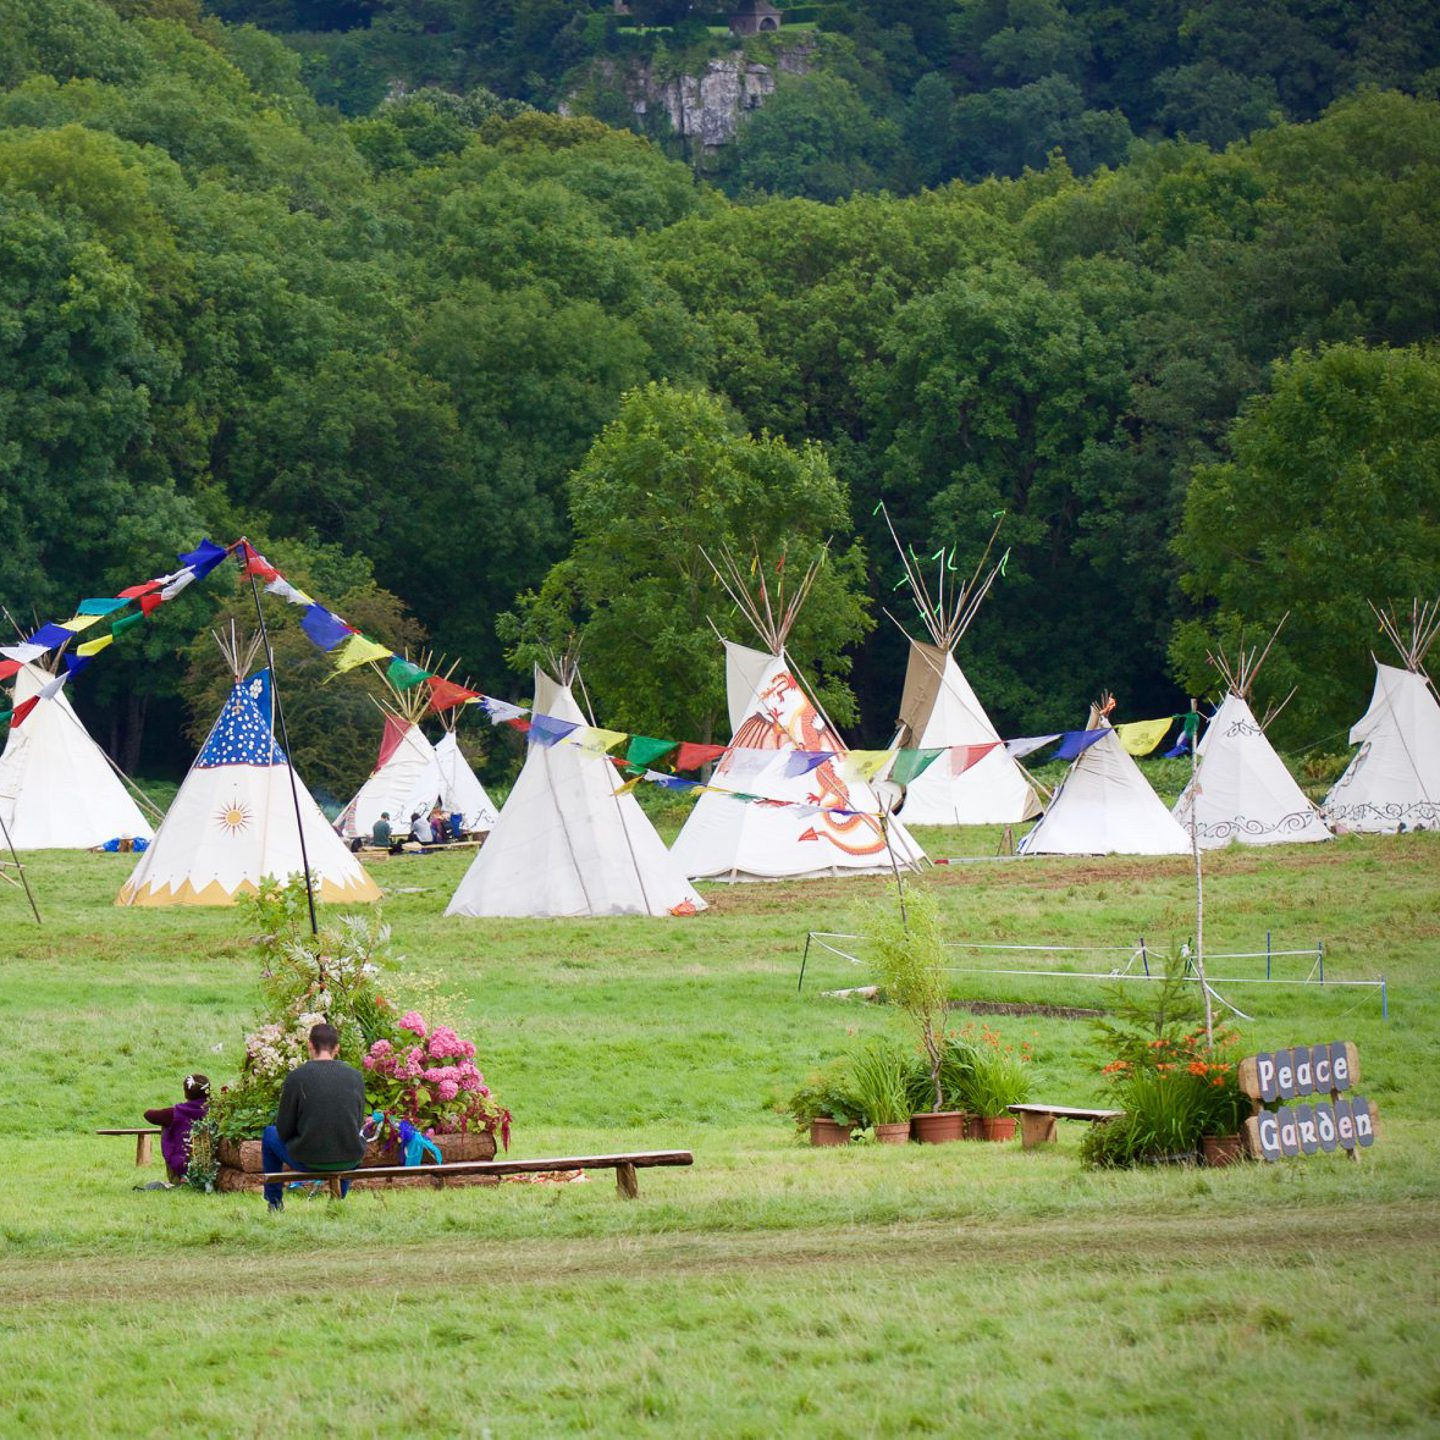 Green Gathering - Tents